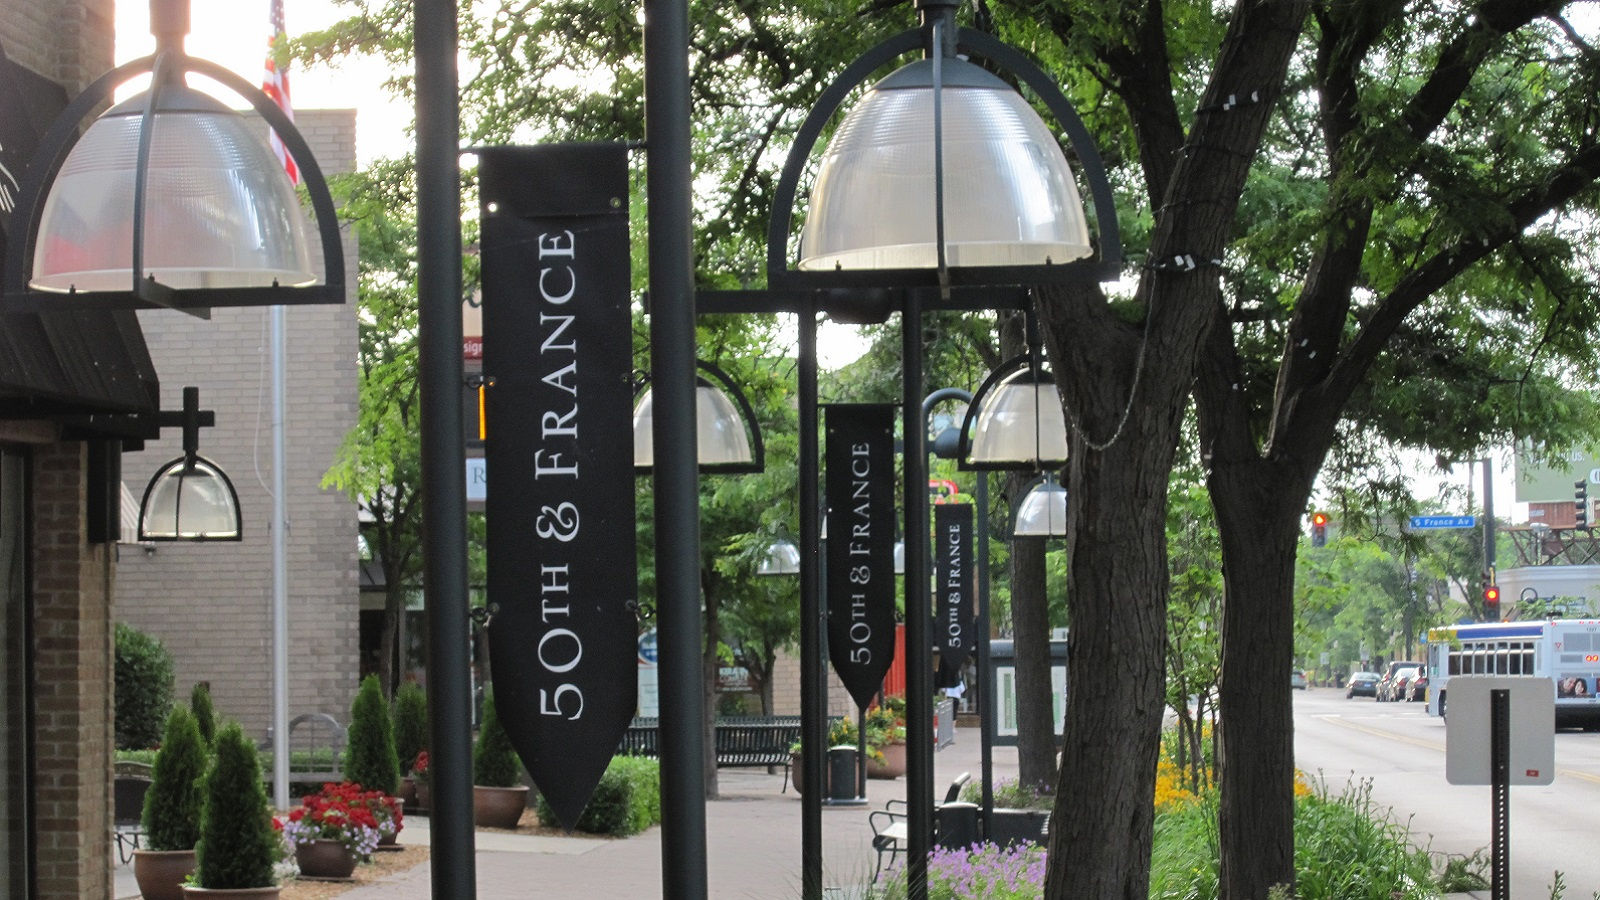 Things to do in Edina include upscale and boutique shopping at 50th and France